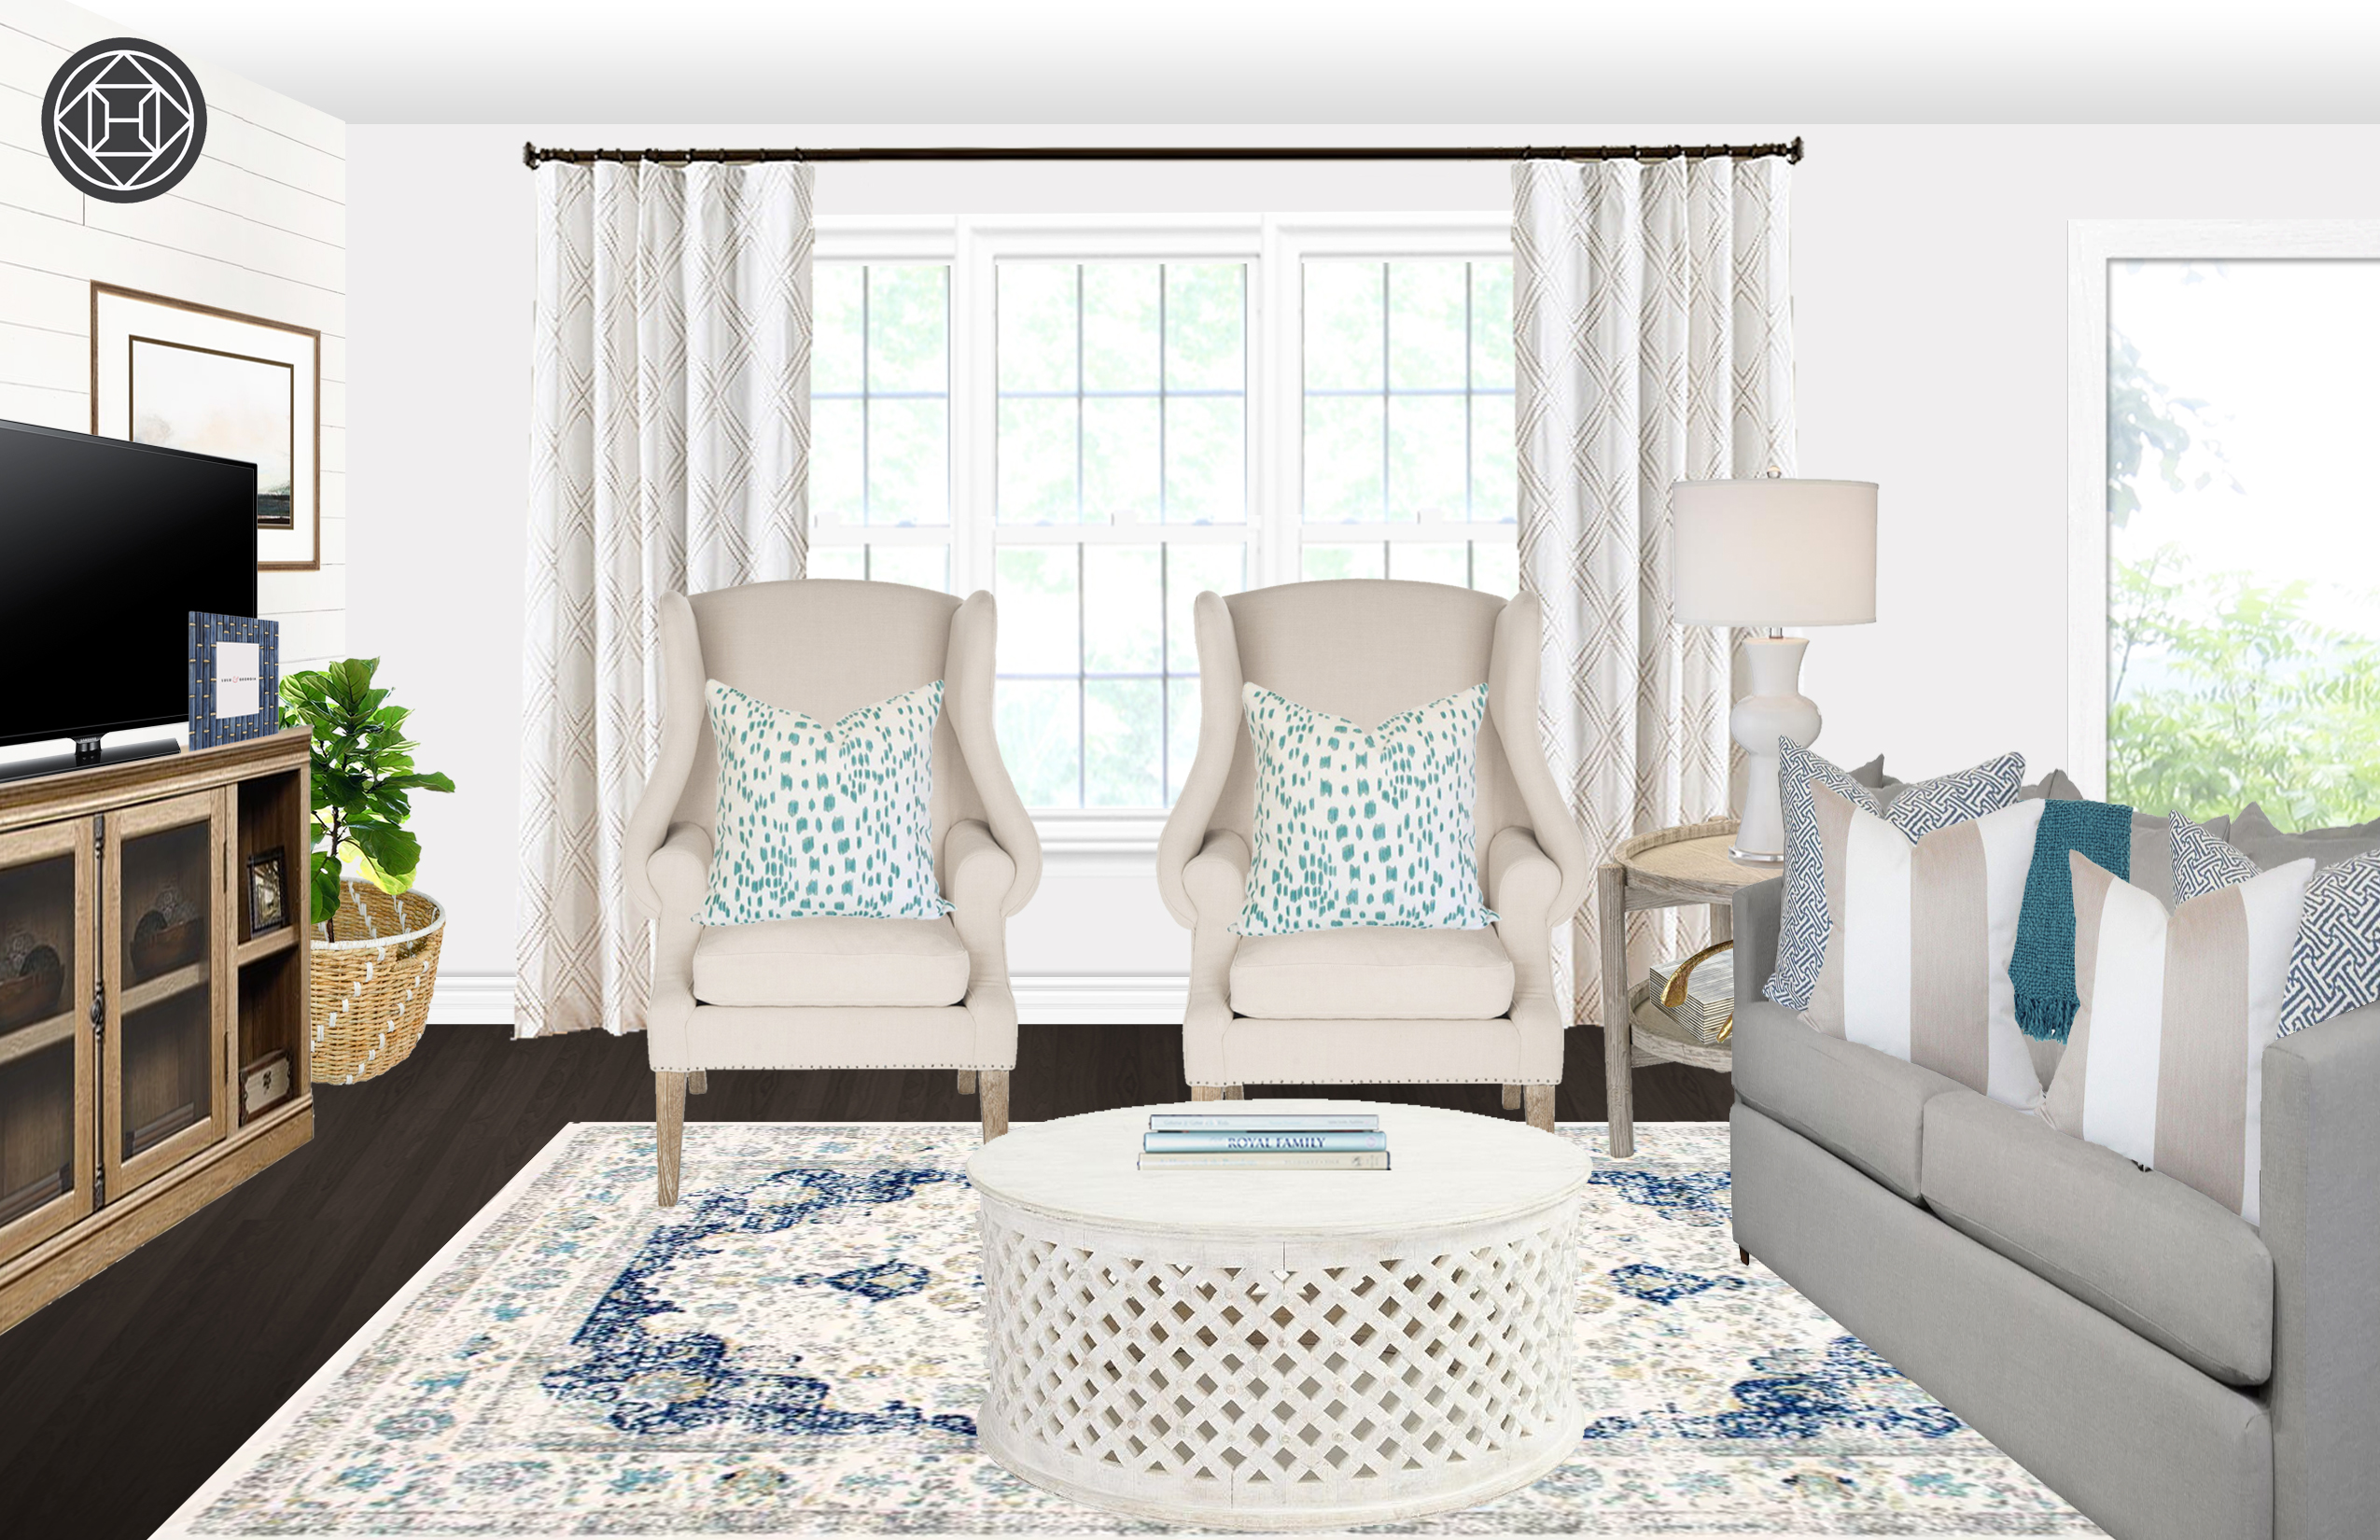 contemporary glam living room design havenly interior designer phpenrztm uttermost asher blue accent table final dining accents space saver lawn furniture diy plans led desk lamp